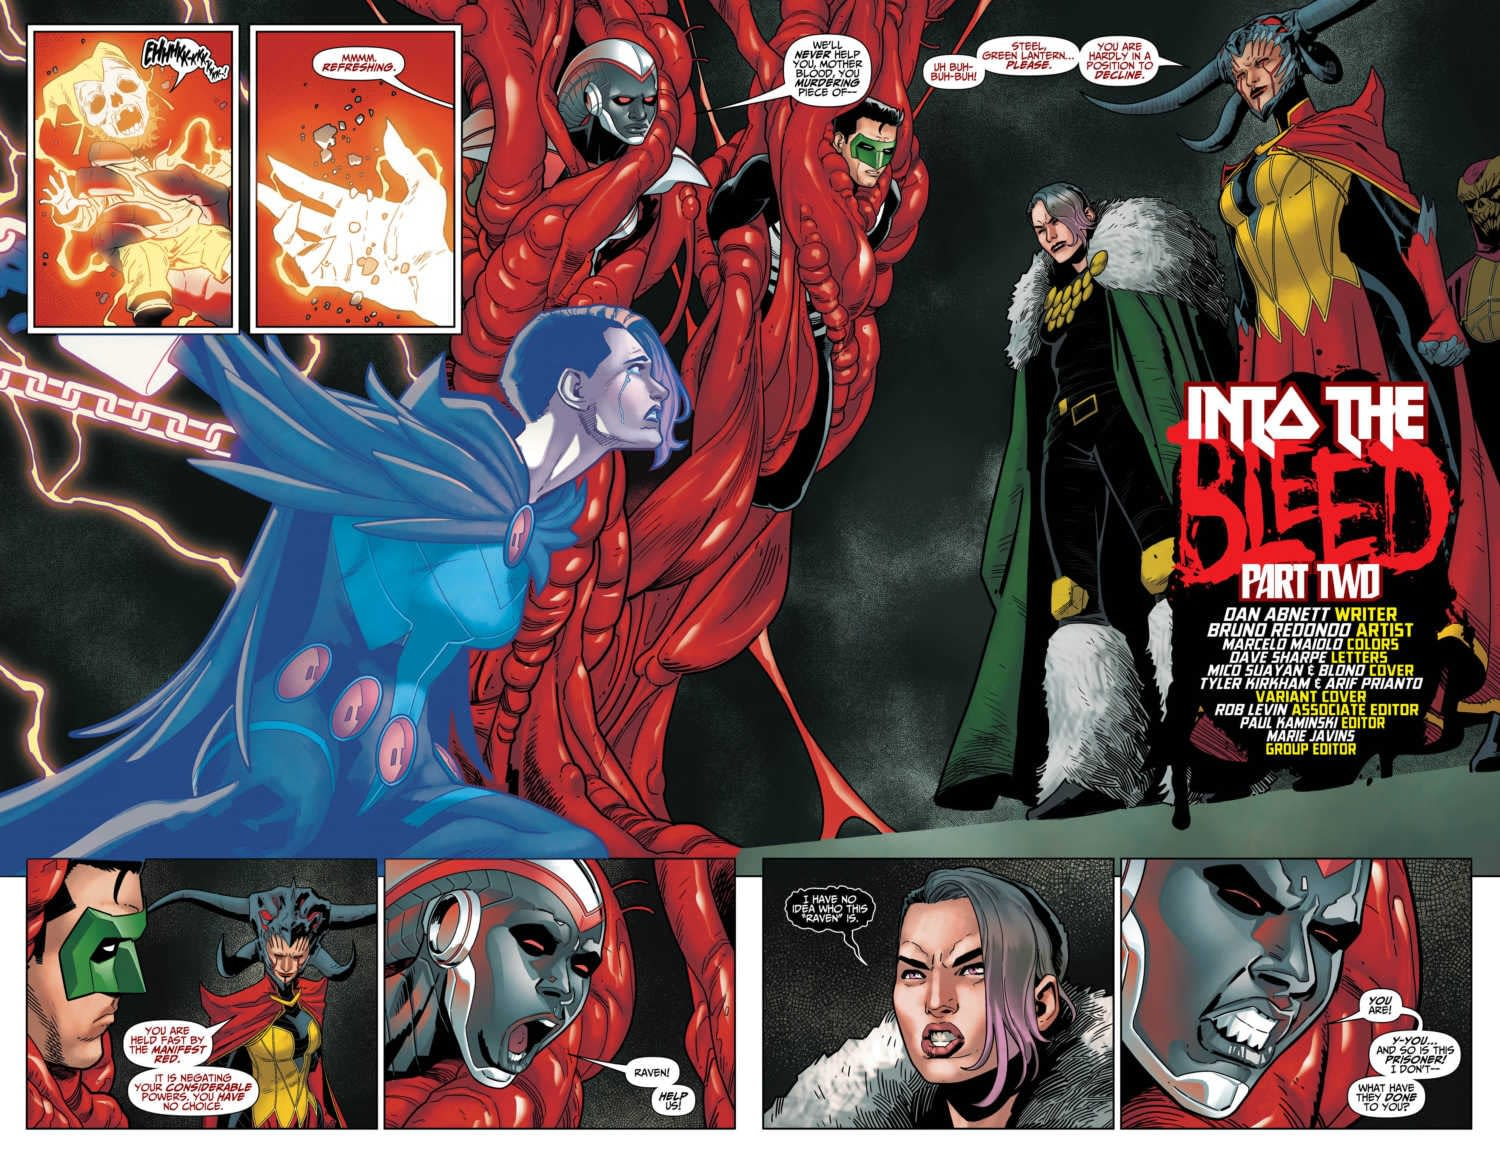 Mother Blood Fights the Tyranny of Justice in Tomorrow's Titans #34